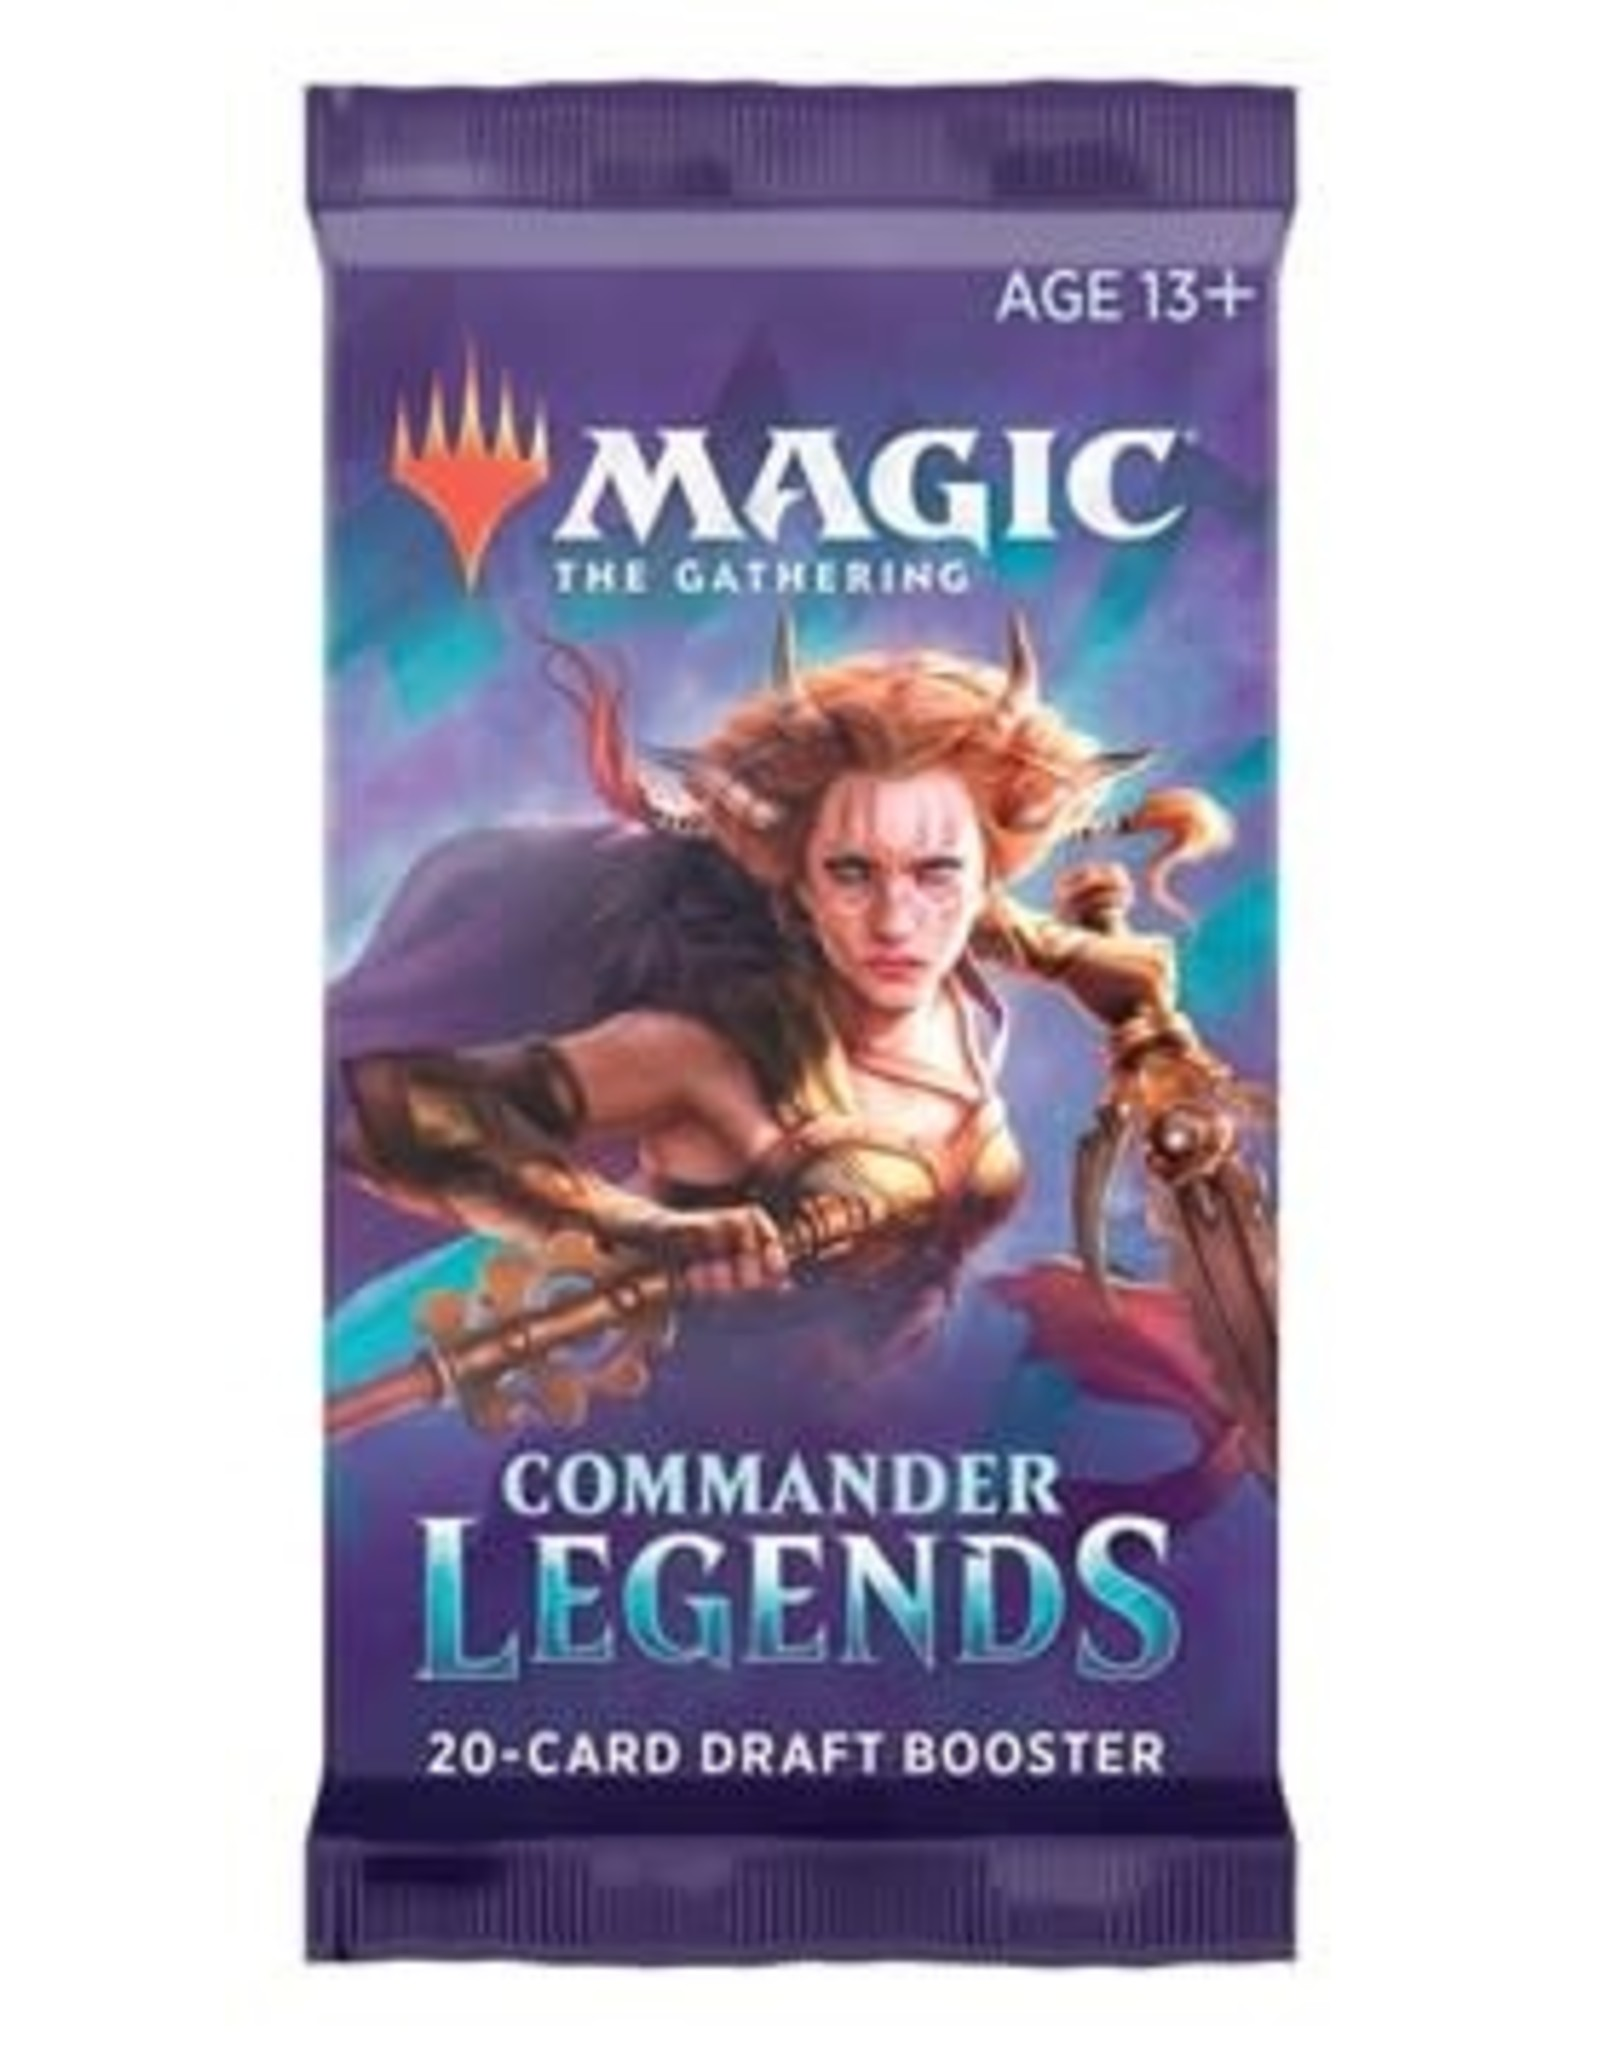 Commander Legends - Draft Booster Pack